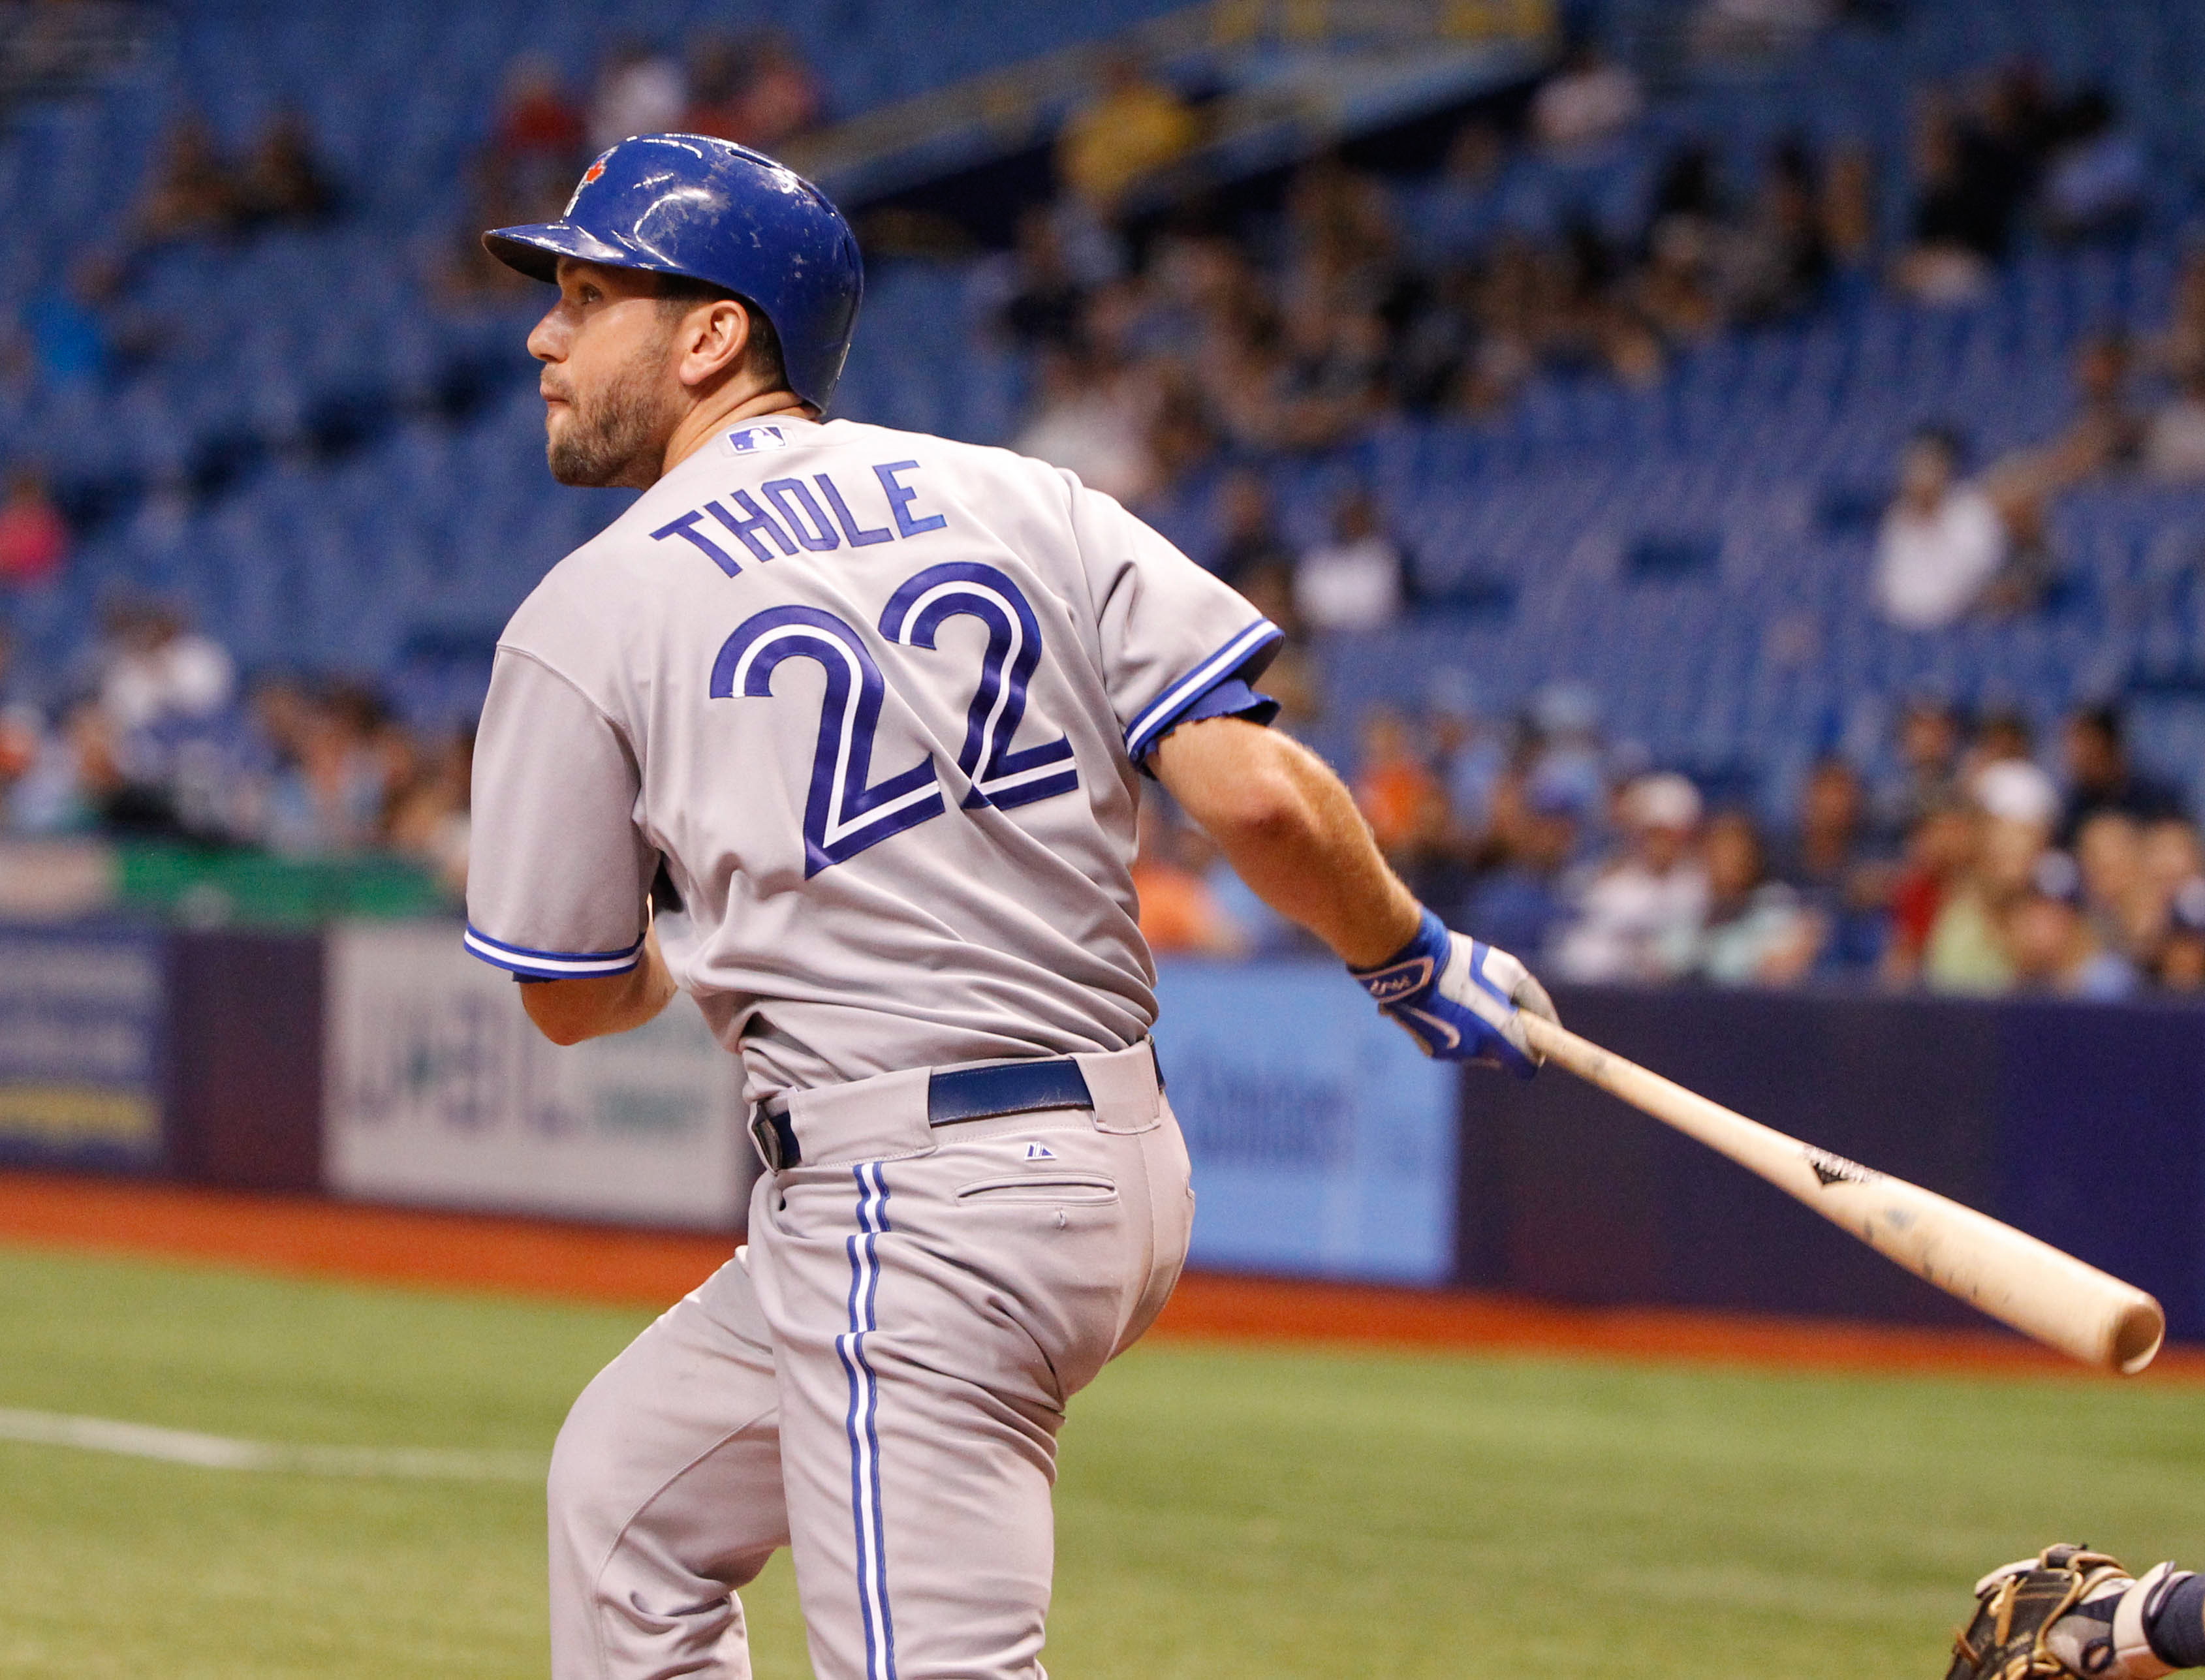 Josh Thole will get to keep his #22!